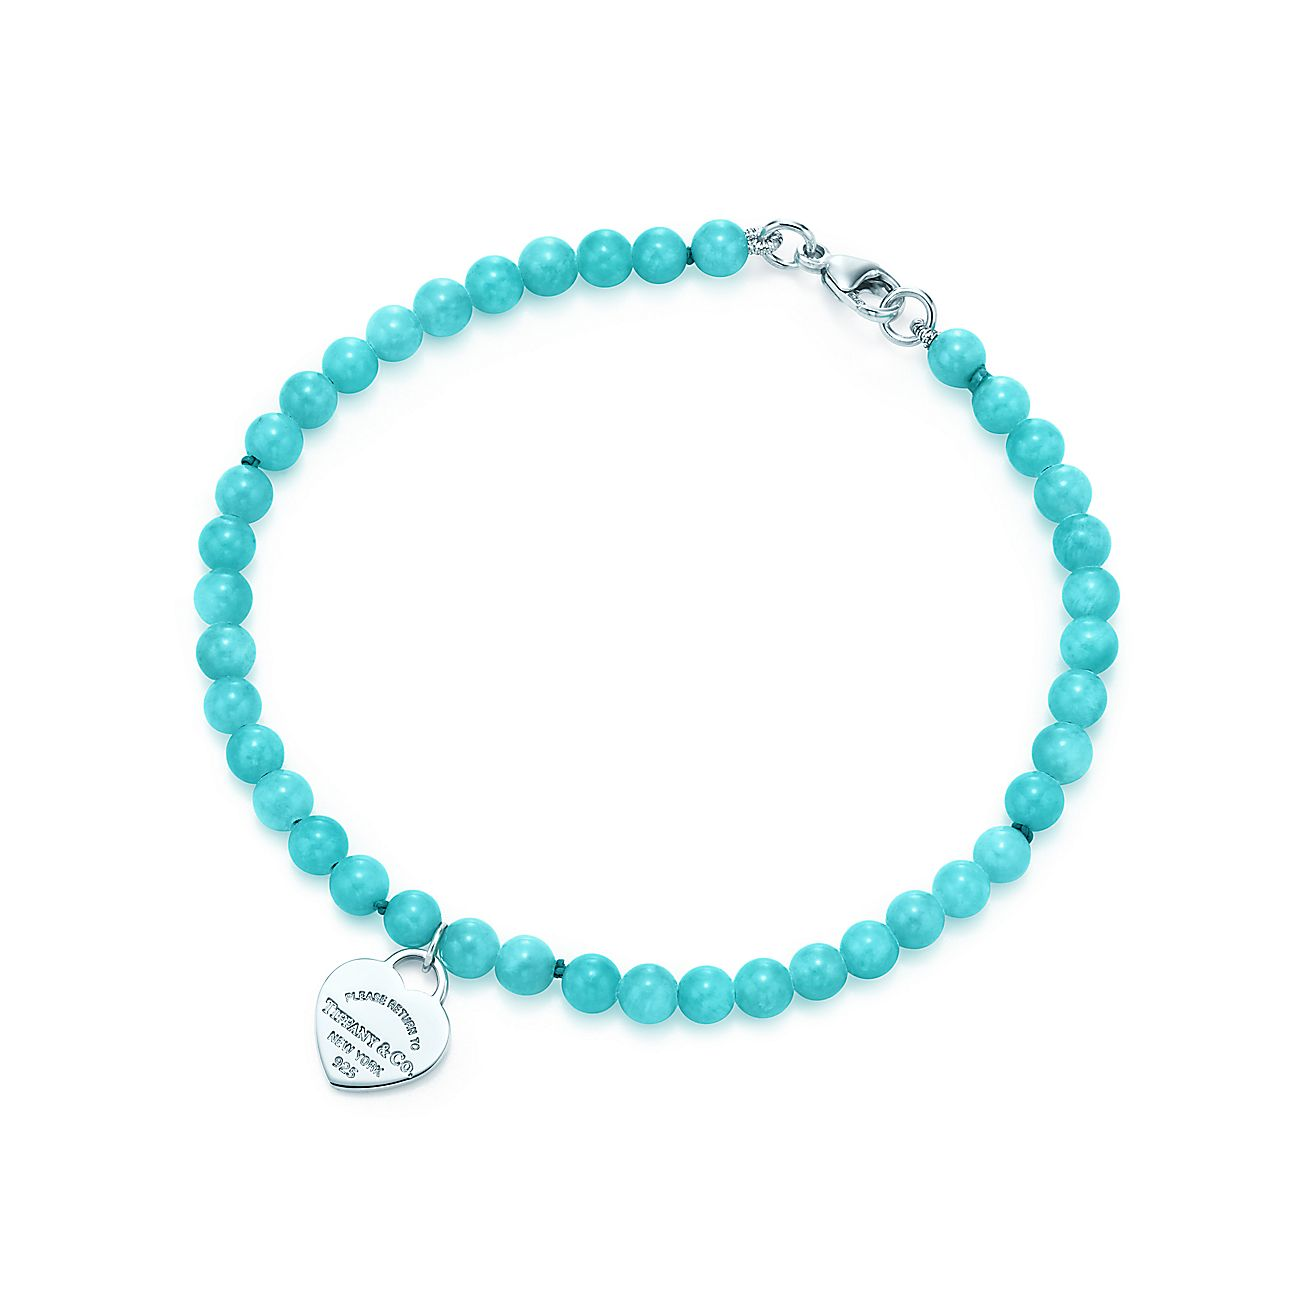 Return To Tiffany Mini Heart Tag In Silver On An Ite Bead Bracelet Co